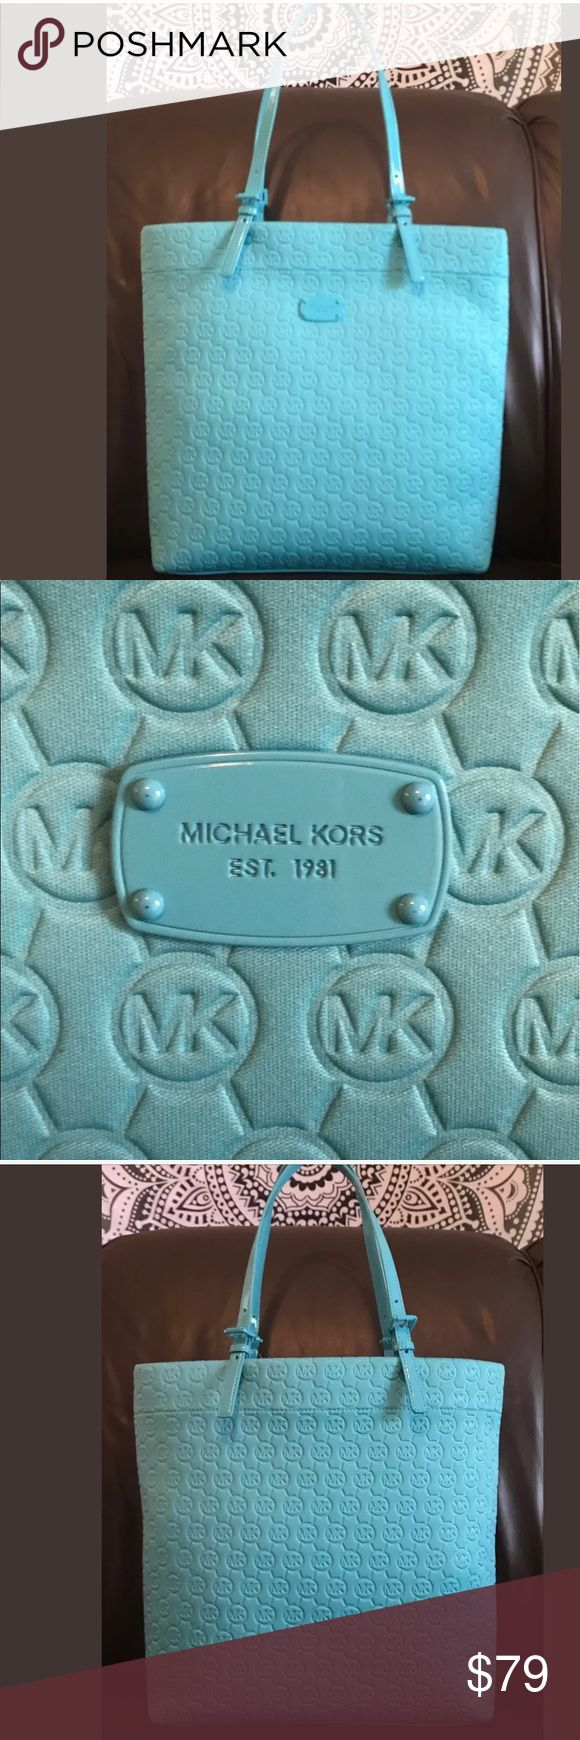 "Extra large Michael Kors Turquoise JetSet tote NWT I'm offering an awesome Michael Kors Extra Large Monogram Jet Set Tote, Travel, Shoulder Bag New with tags, retail cost 158.00.  It's in a beautiful vibrant summer Turquoise blue, Absolutely amazing.   It measures a generous 14.5"" x 14"" x 4"" with 10"" drop on adjustable patent leather handles.  The interior is lined in cream with compartments to stay organized. This Tote is very roomy, great for travel or shopping, an awesome quality Bag…"